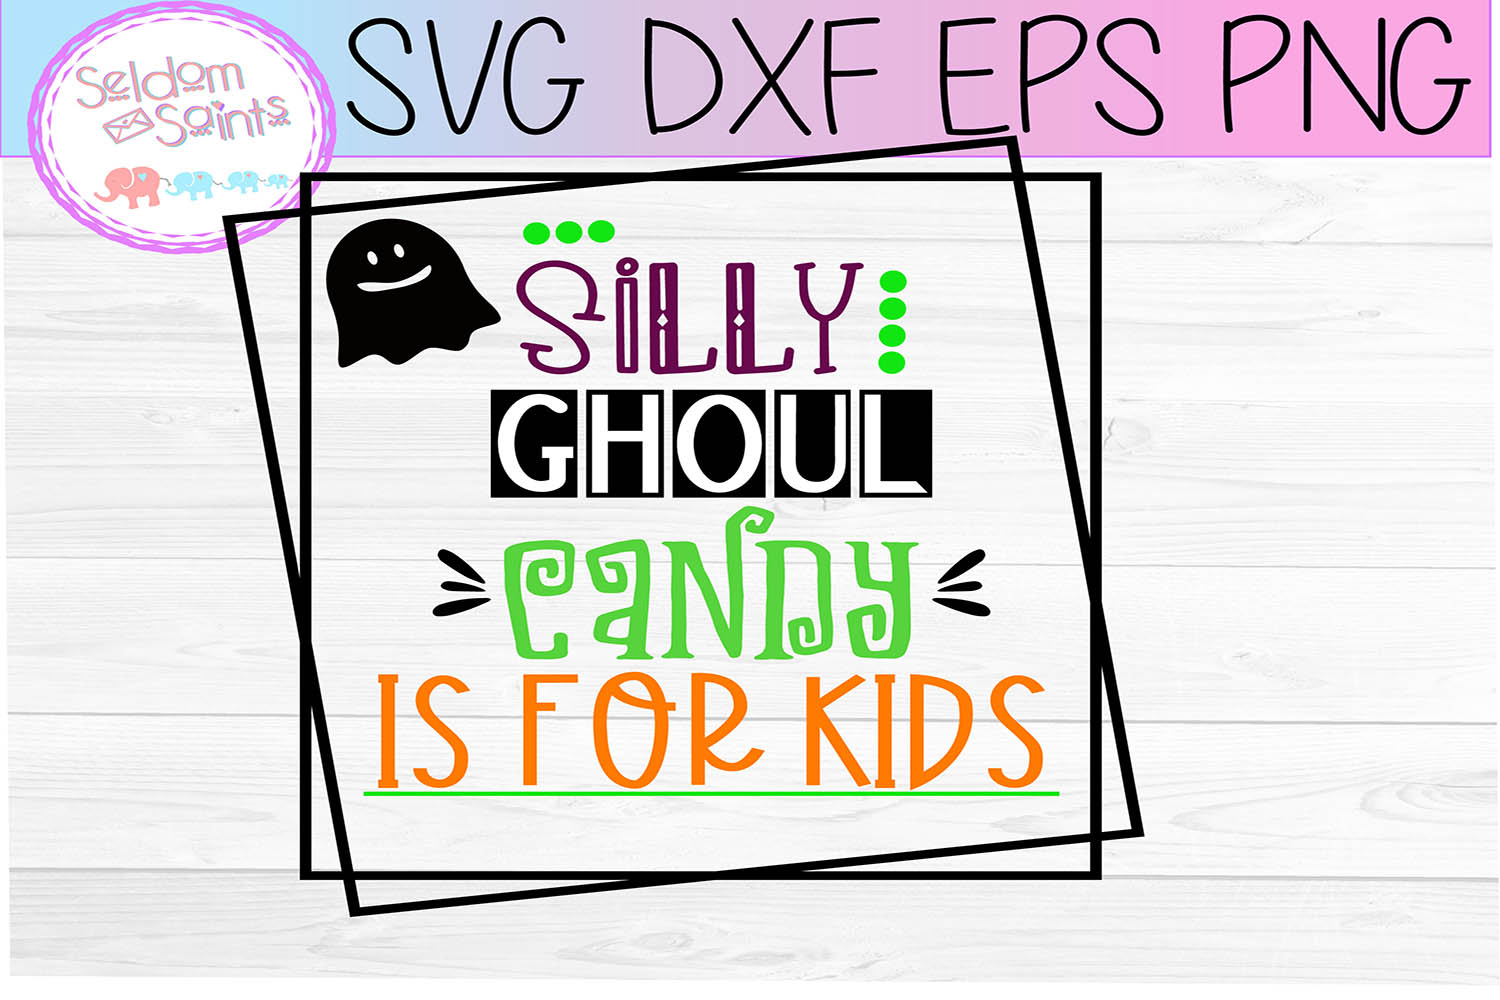 Silly Ghoul Candy is for Kids SVG PNG DXF EPS example image 2